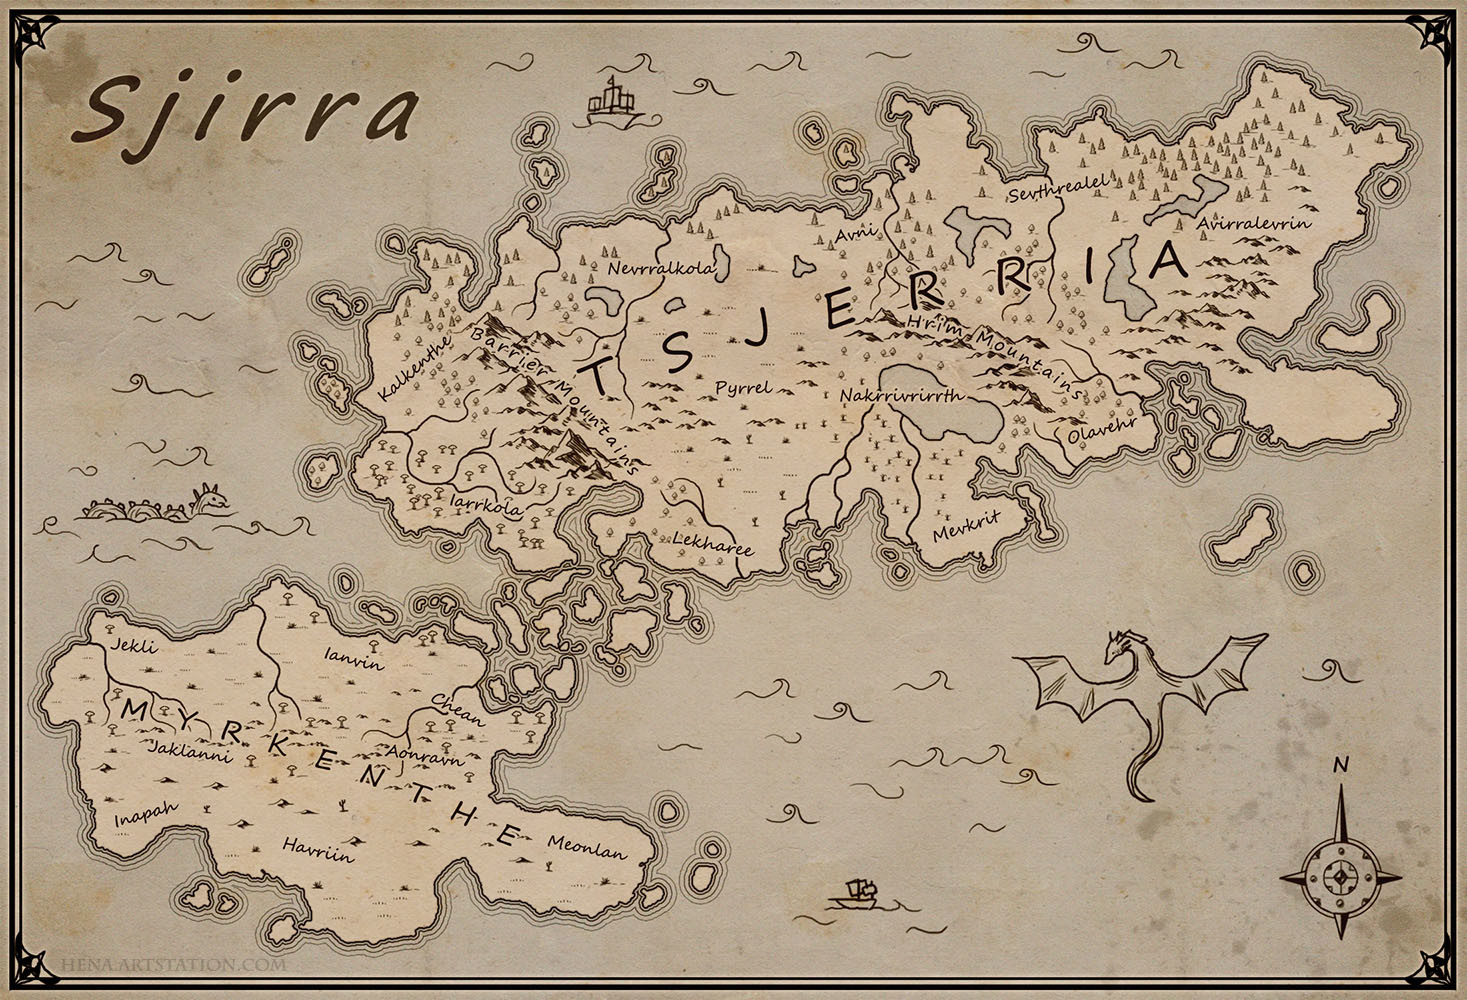 Map of Sjirra